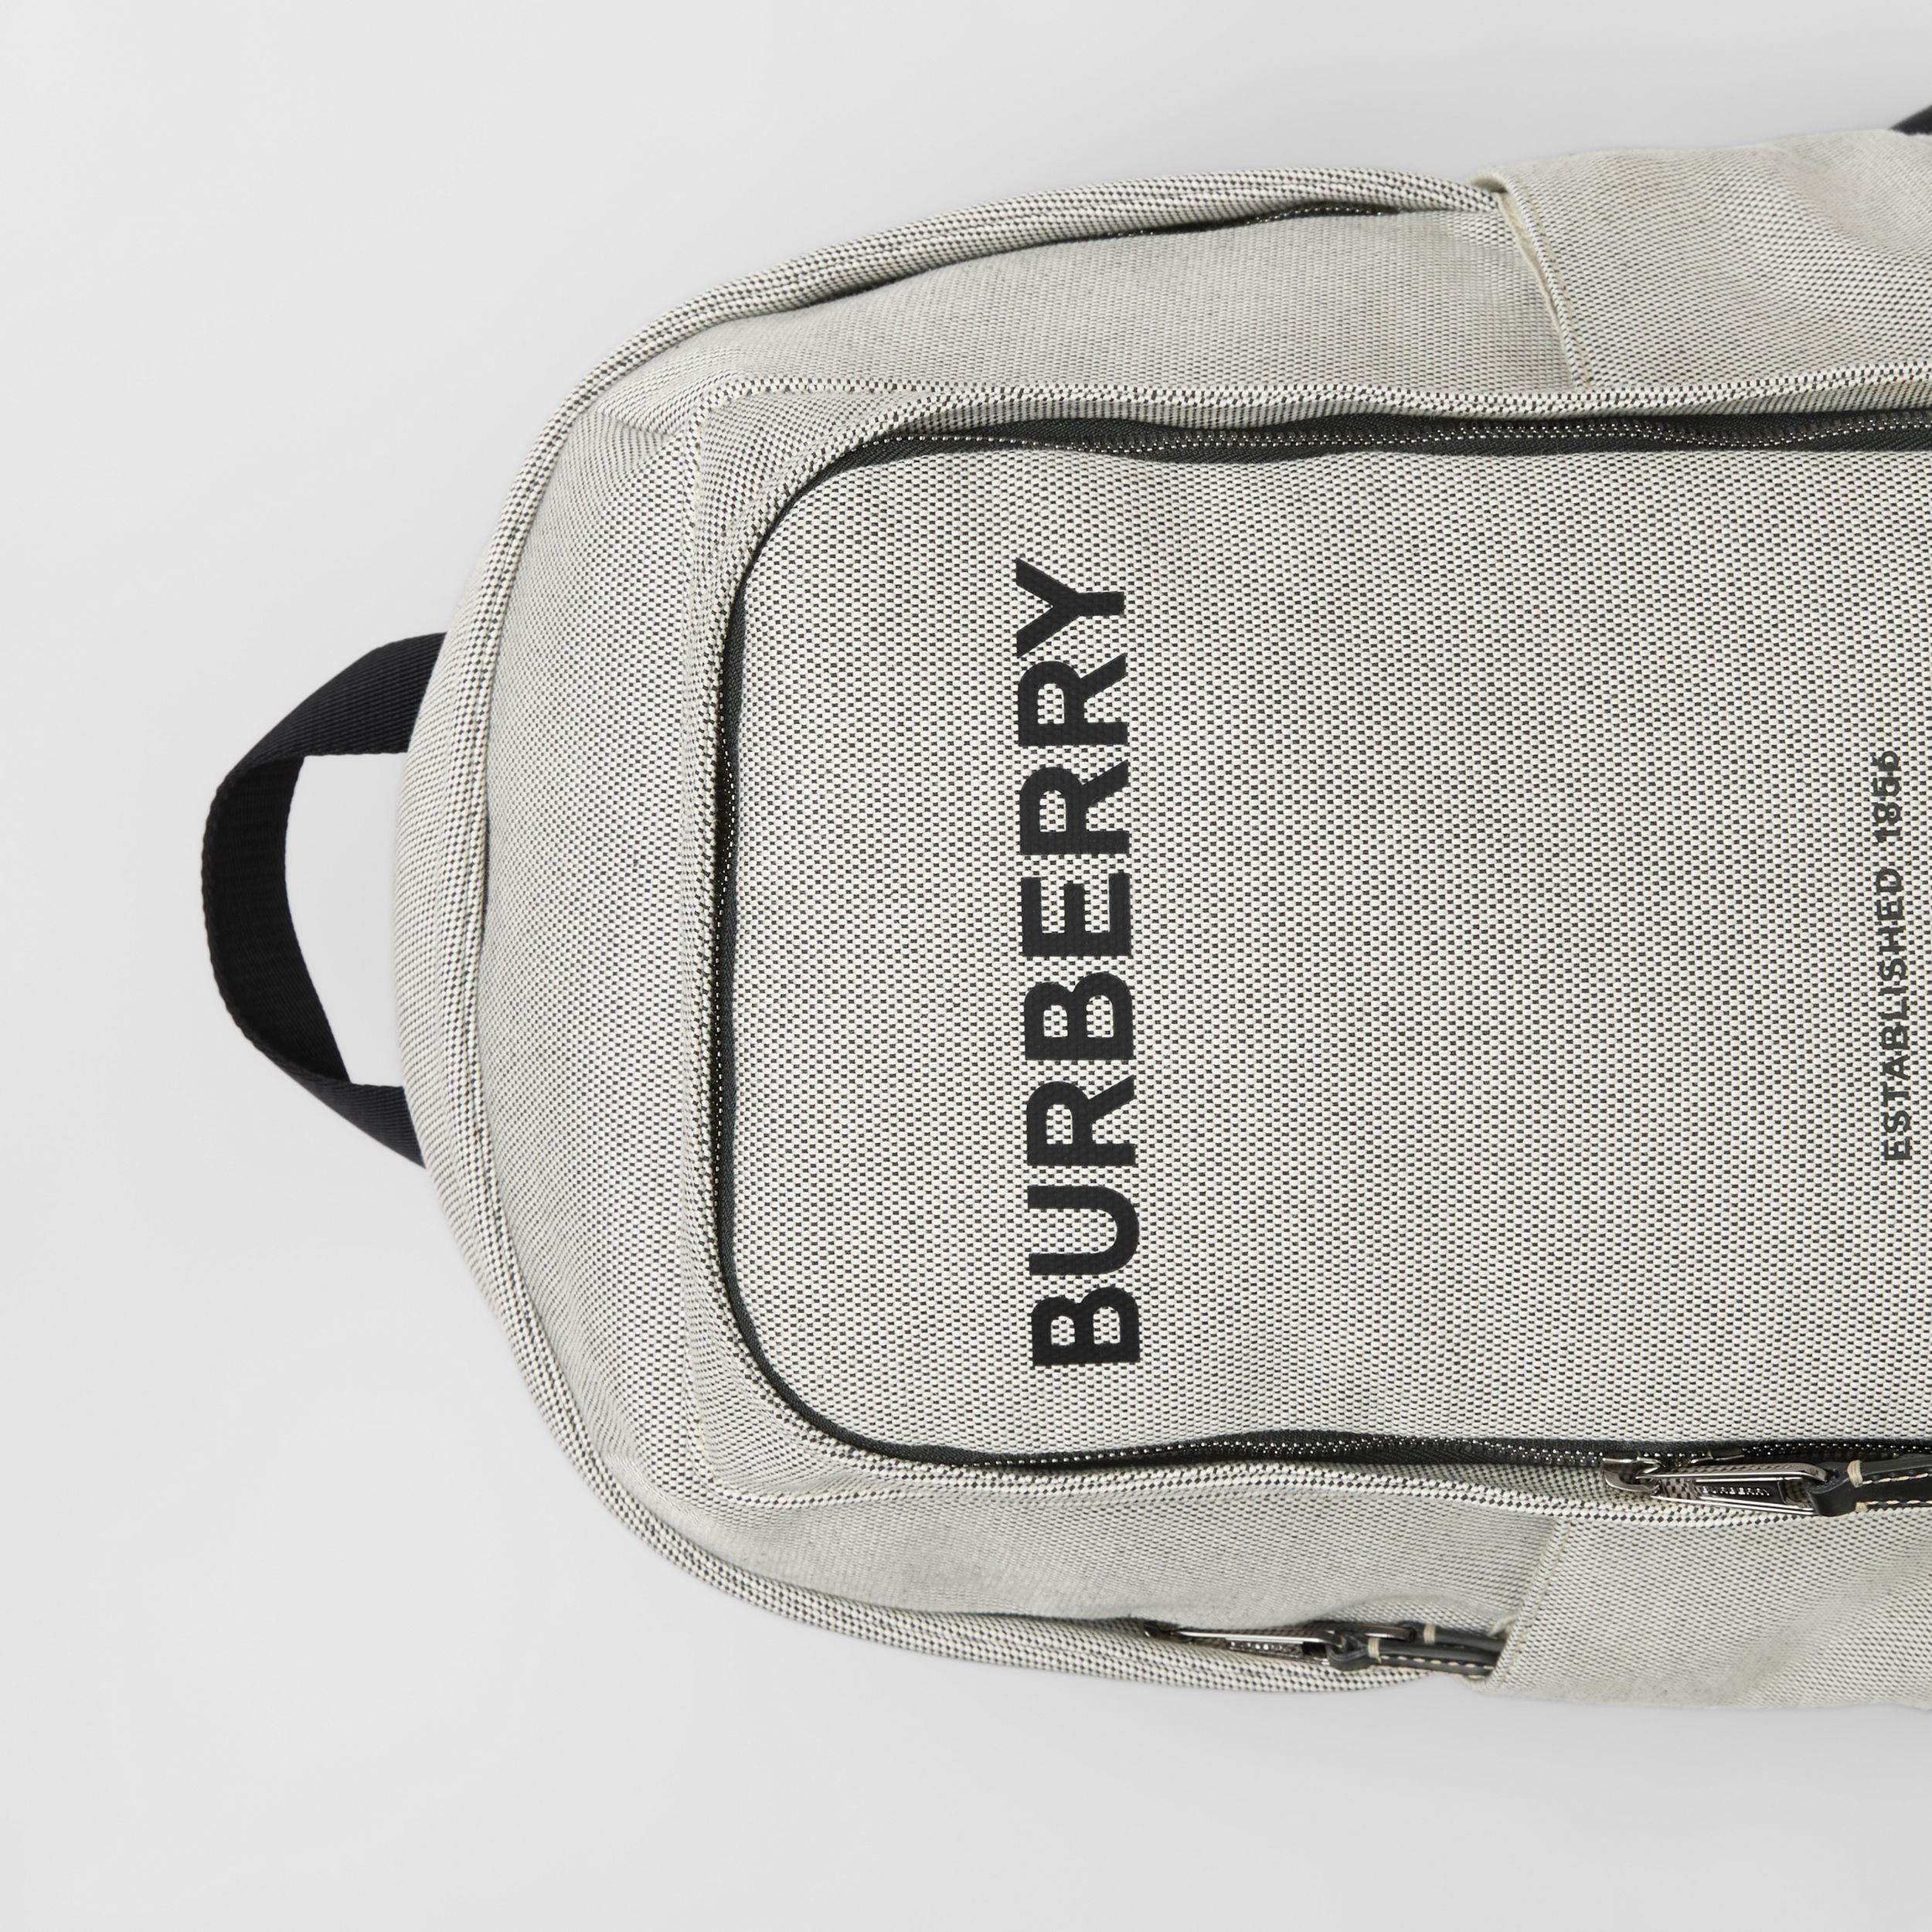 Large Logo Print Cotton Canvas Backpack in Black - Men | Burberry - 2